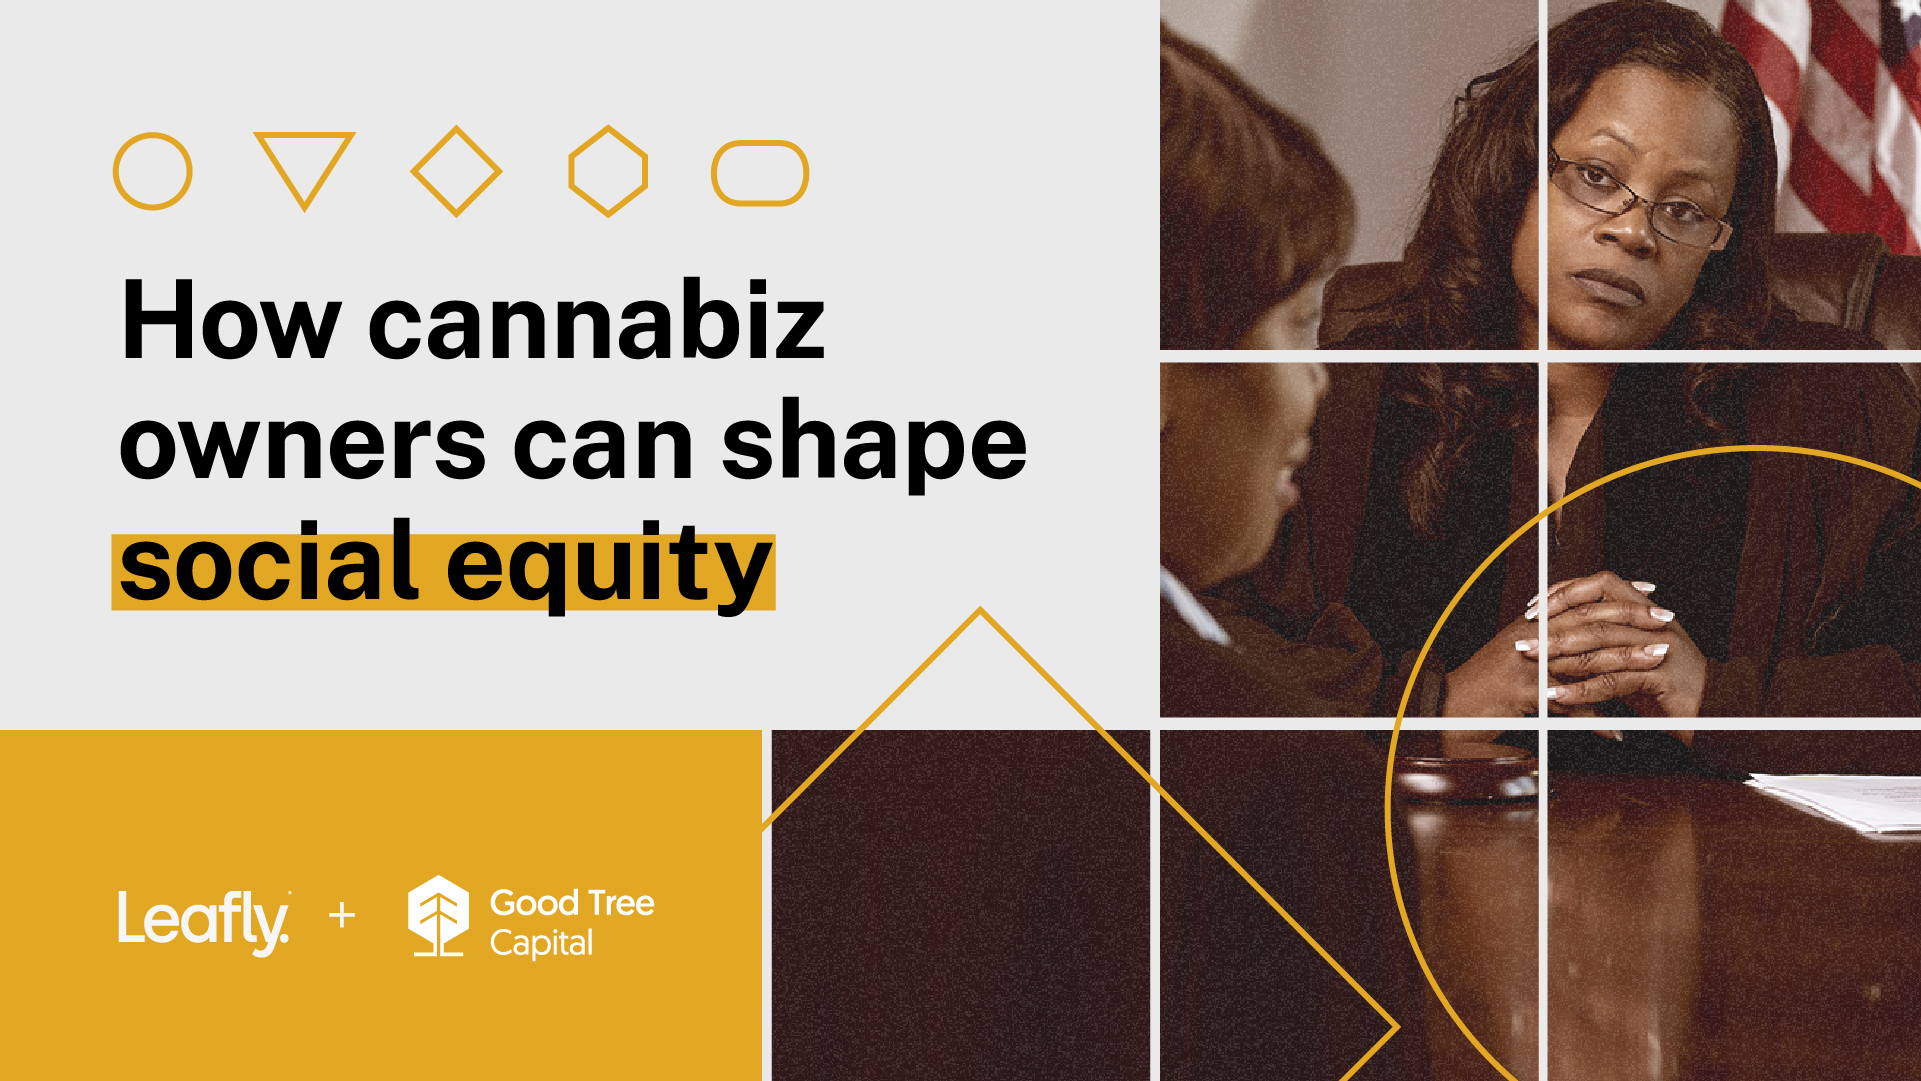 photo of How cannabiz owners can shape social equity image